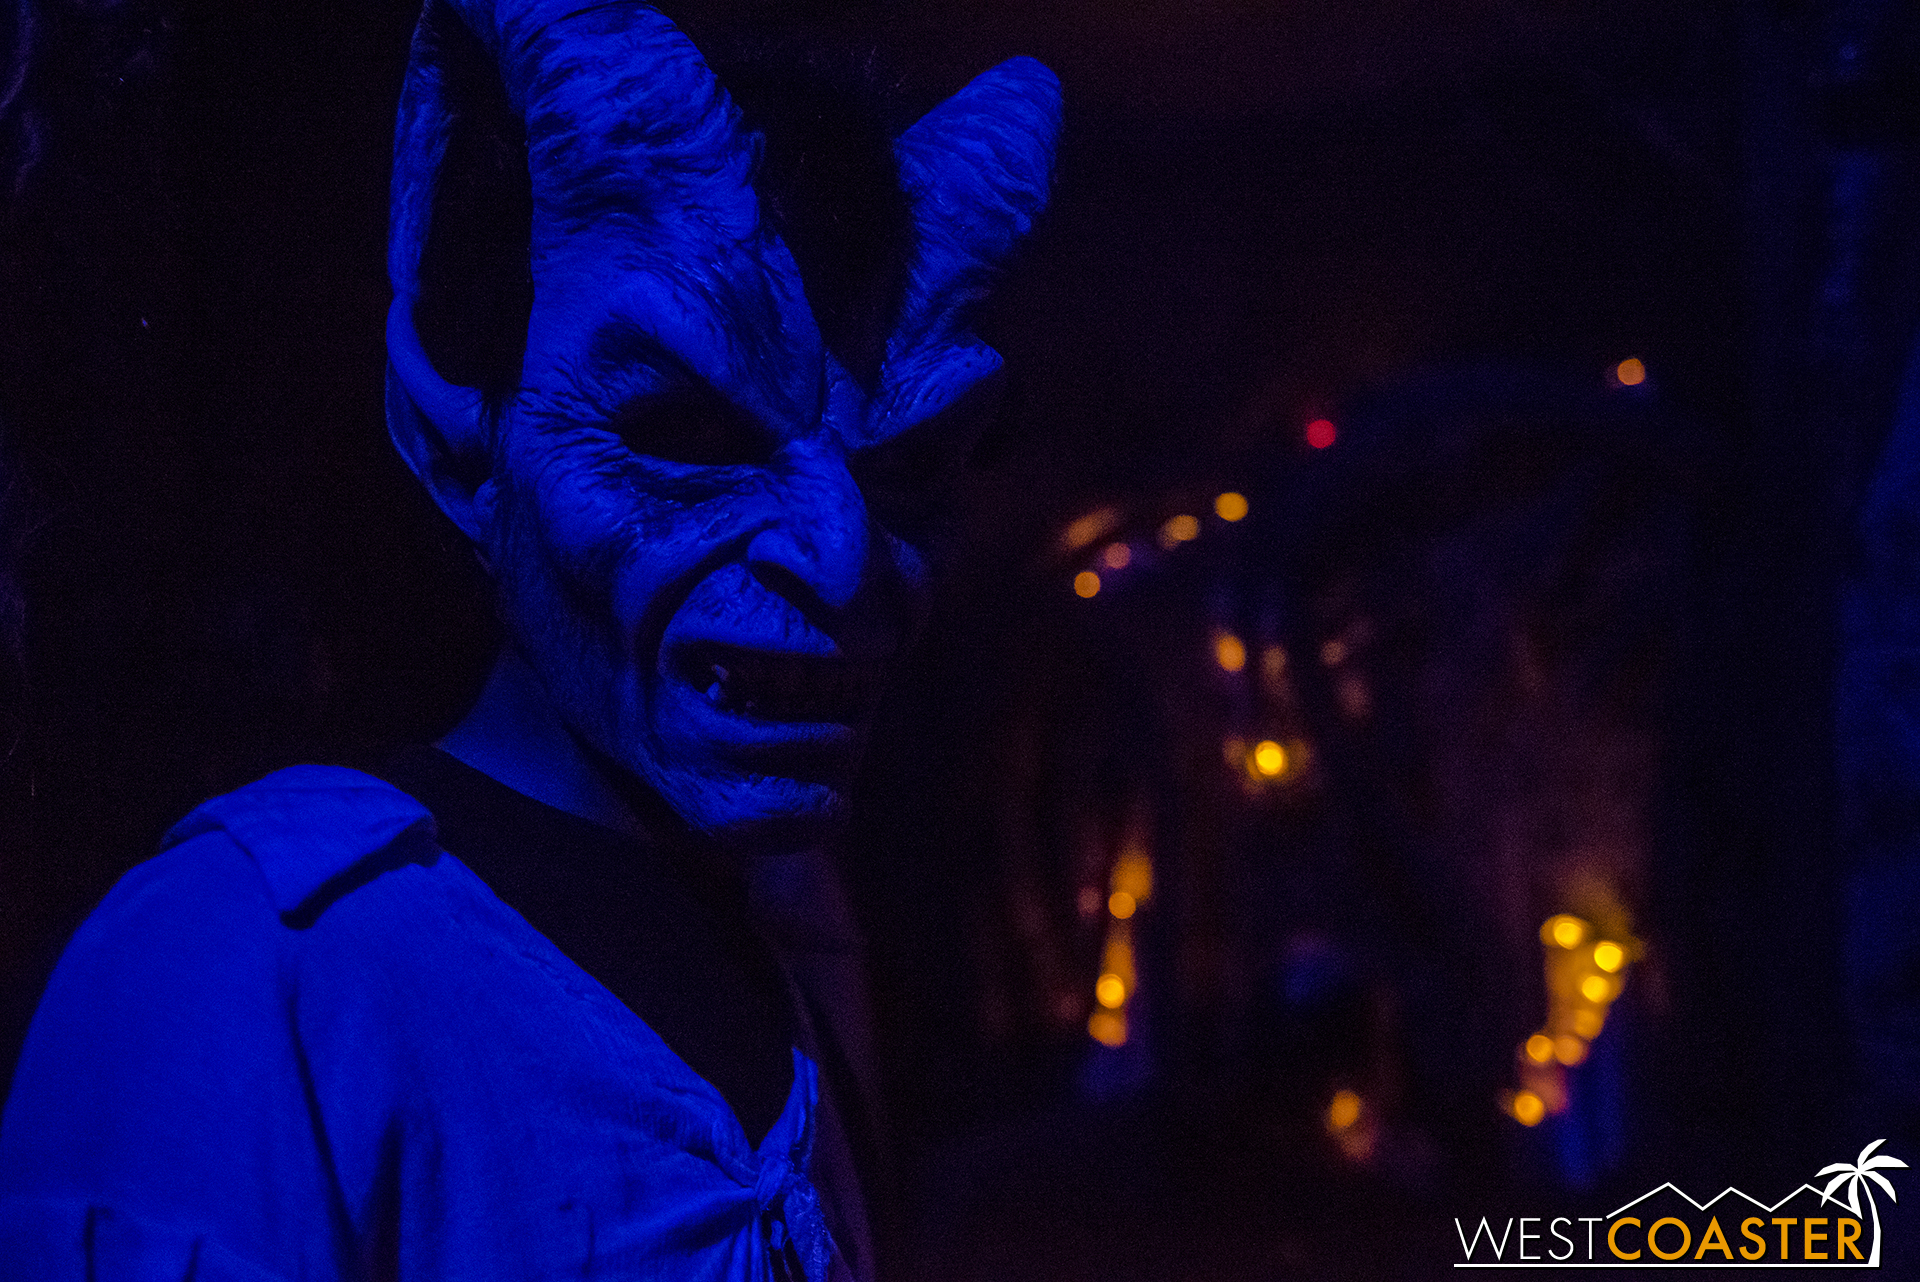 The Dark Realm gets darker as guests head indoors.